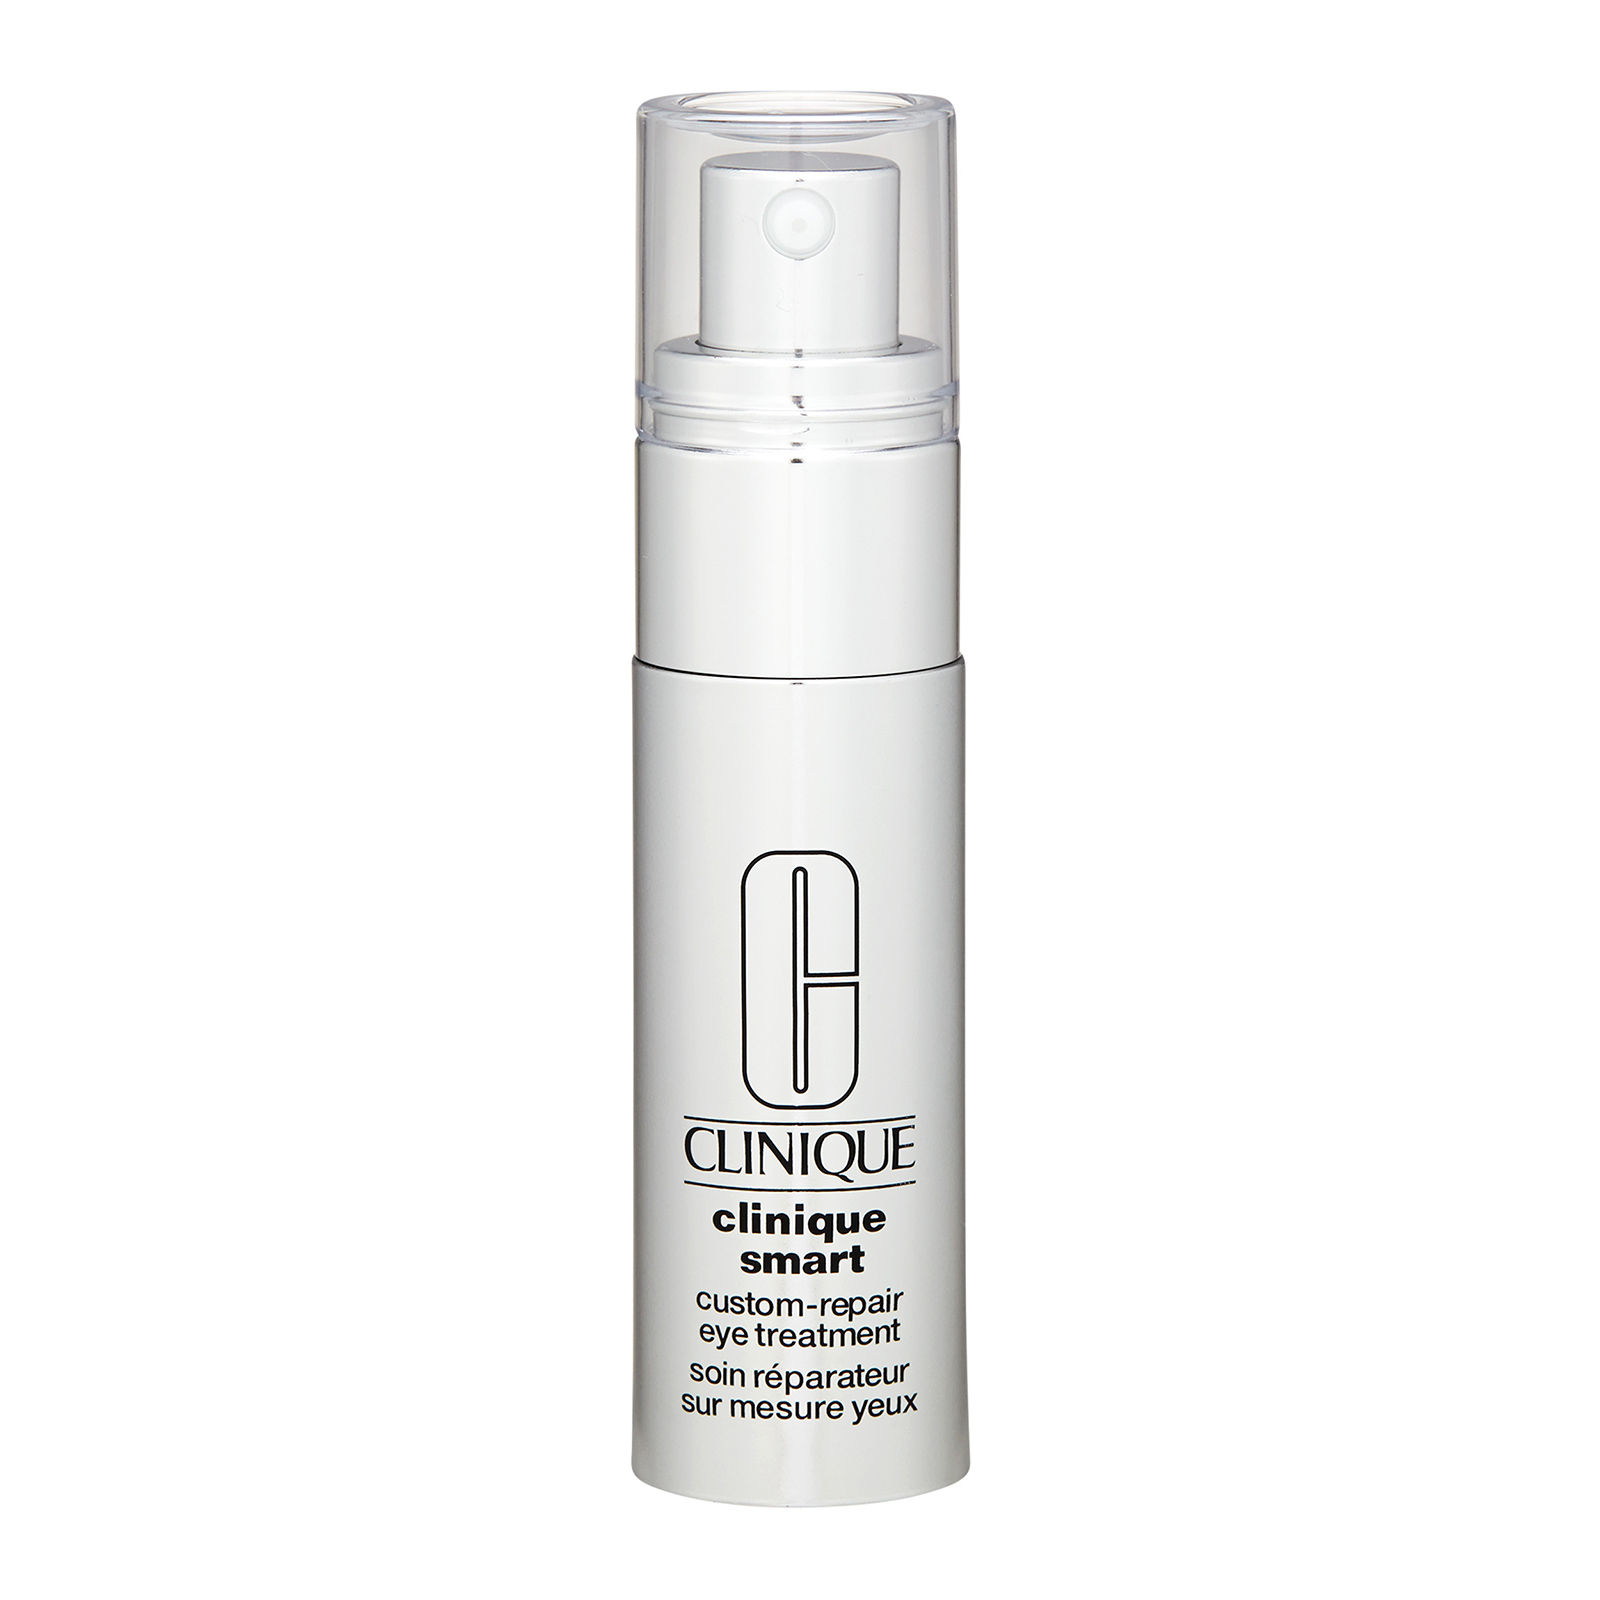 Clinique Clinique Smart  Custom-Repair Eye Treatment (All Skin Types) 0.5oz, 15ml